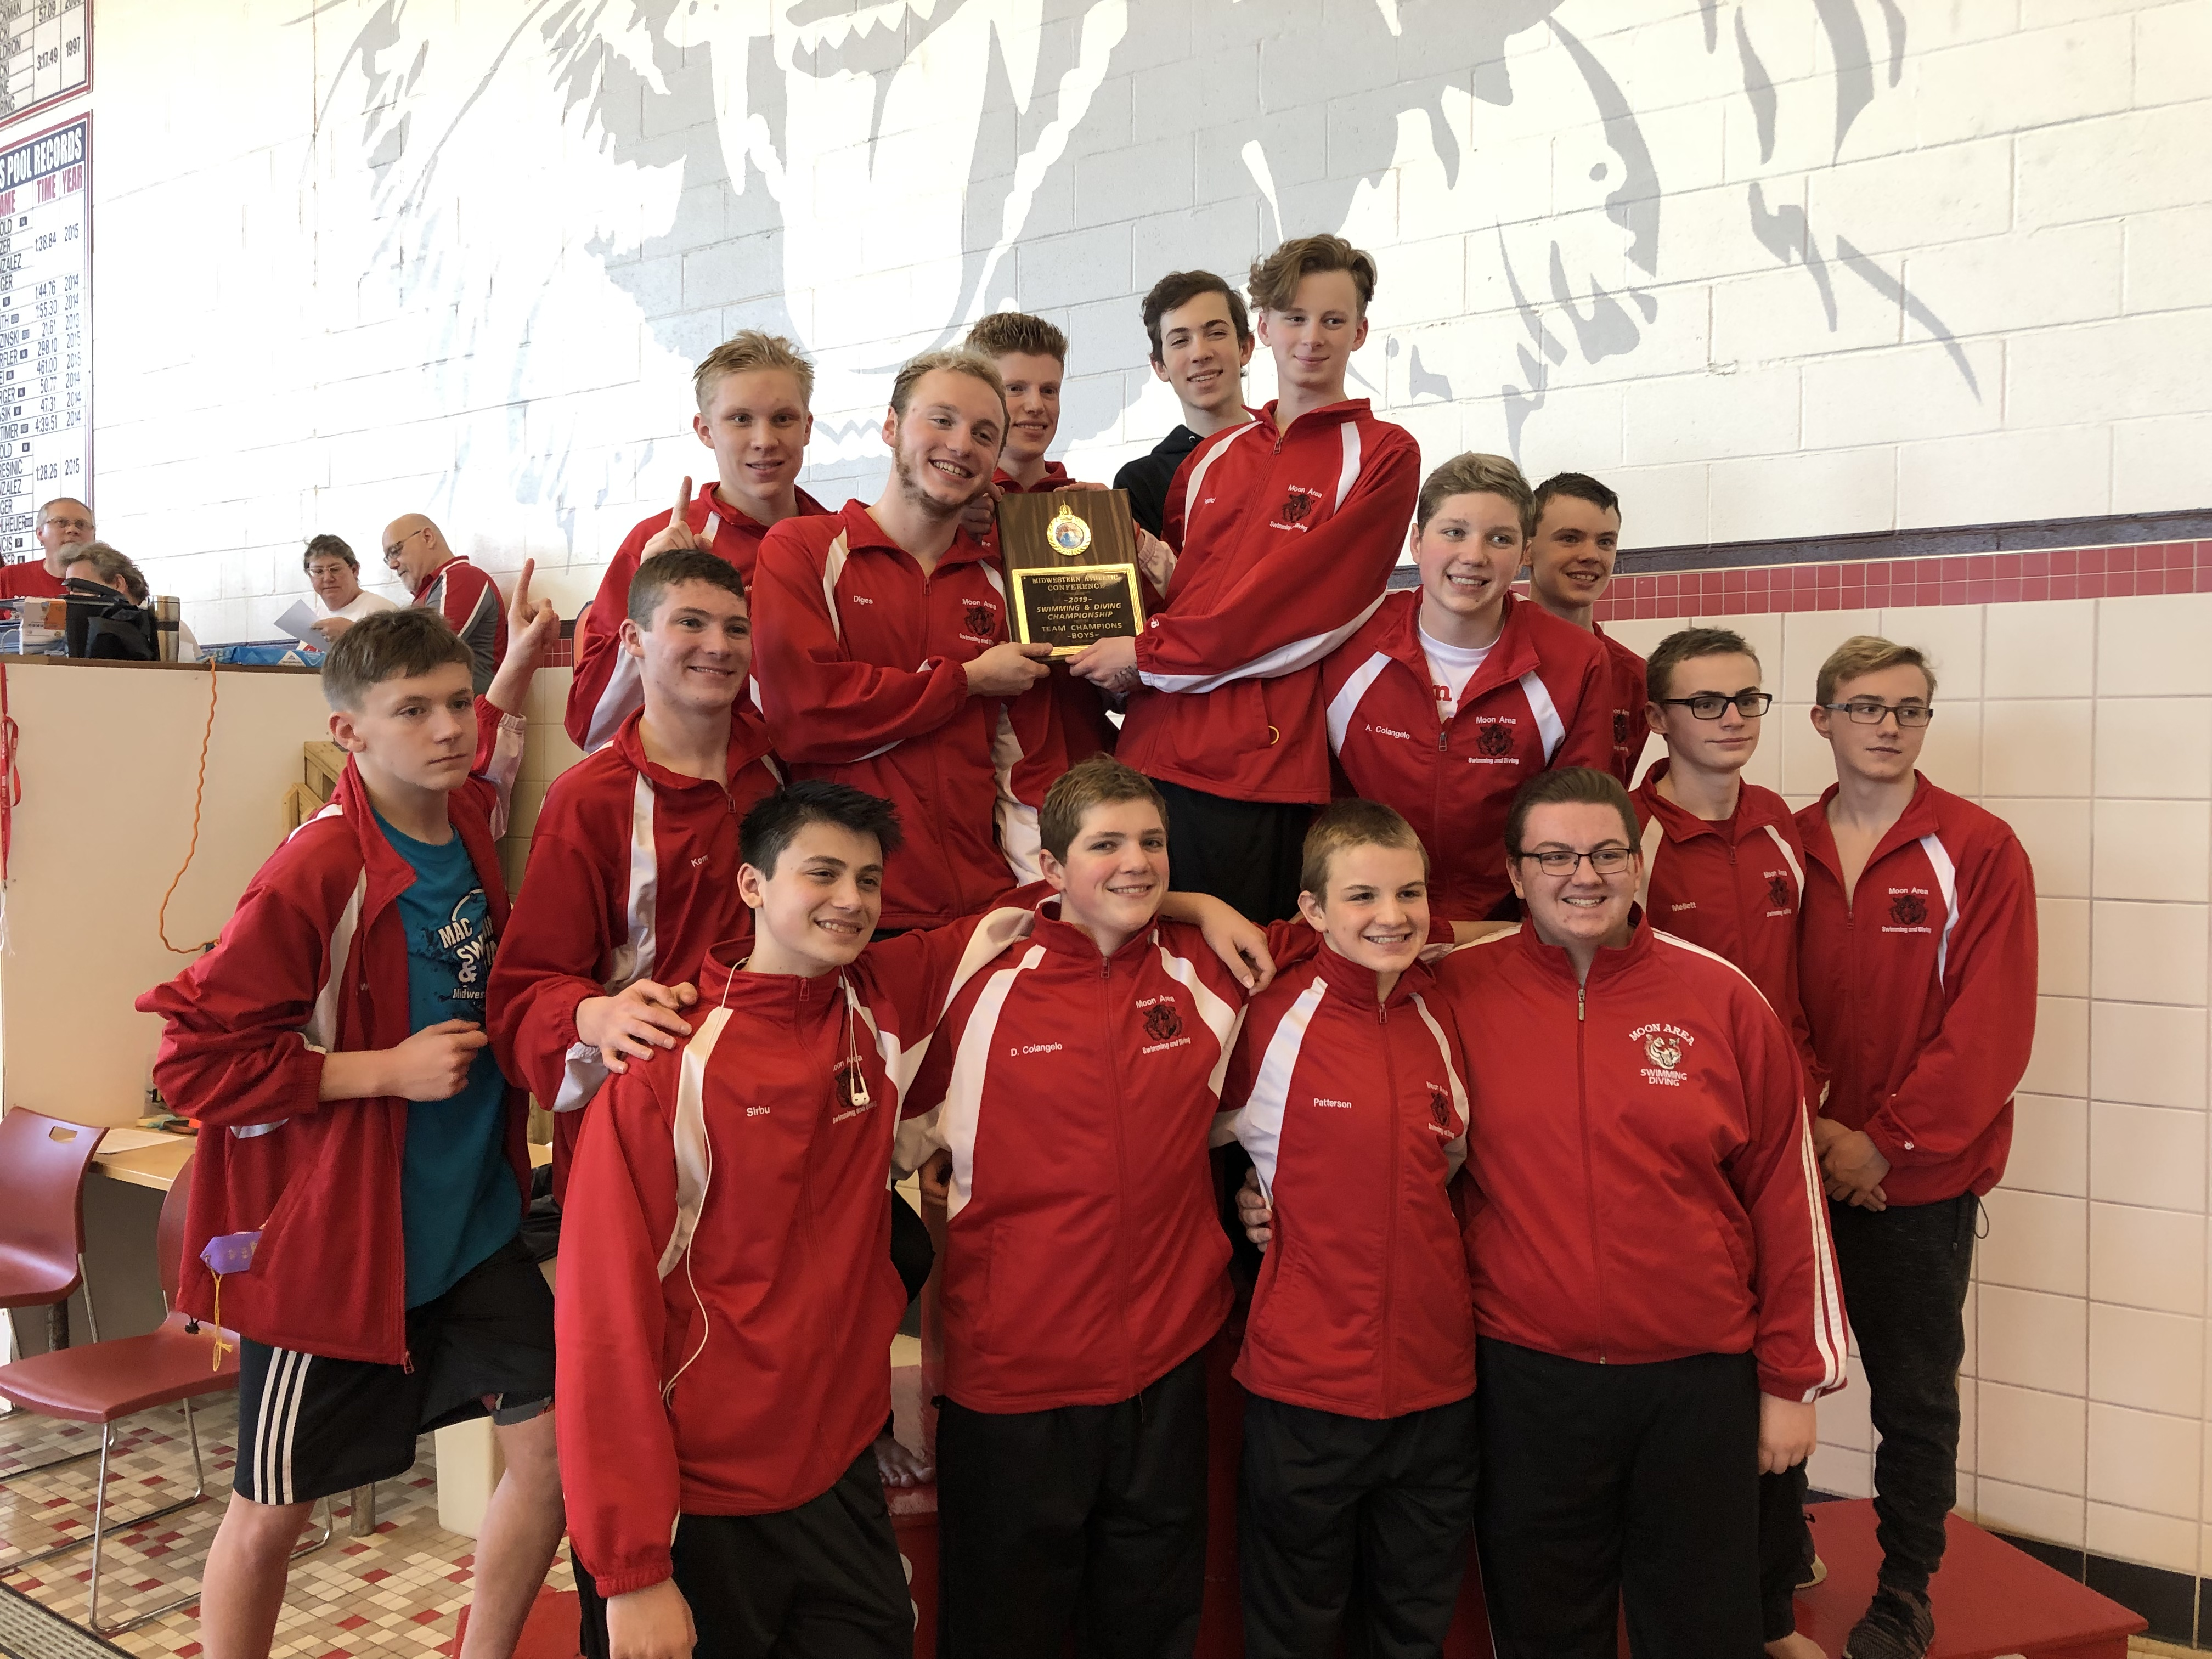 Moon Area Swimming and Diving Team featured on TribLive!